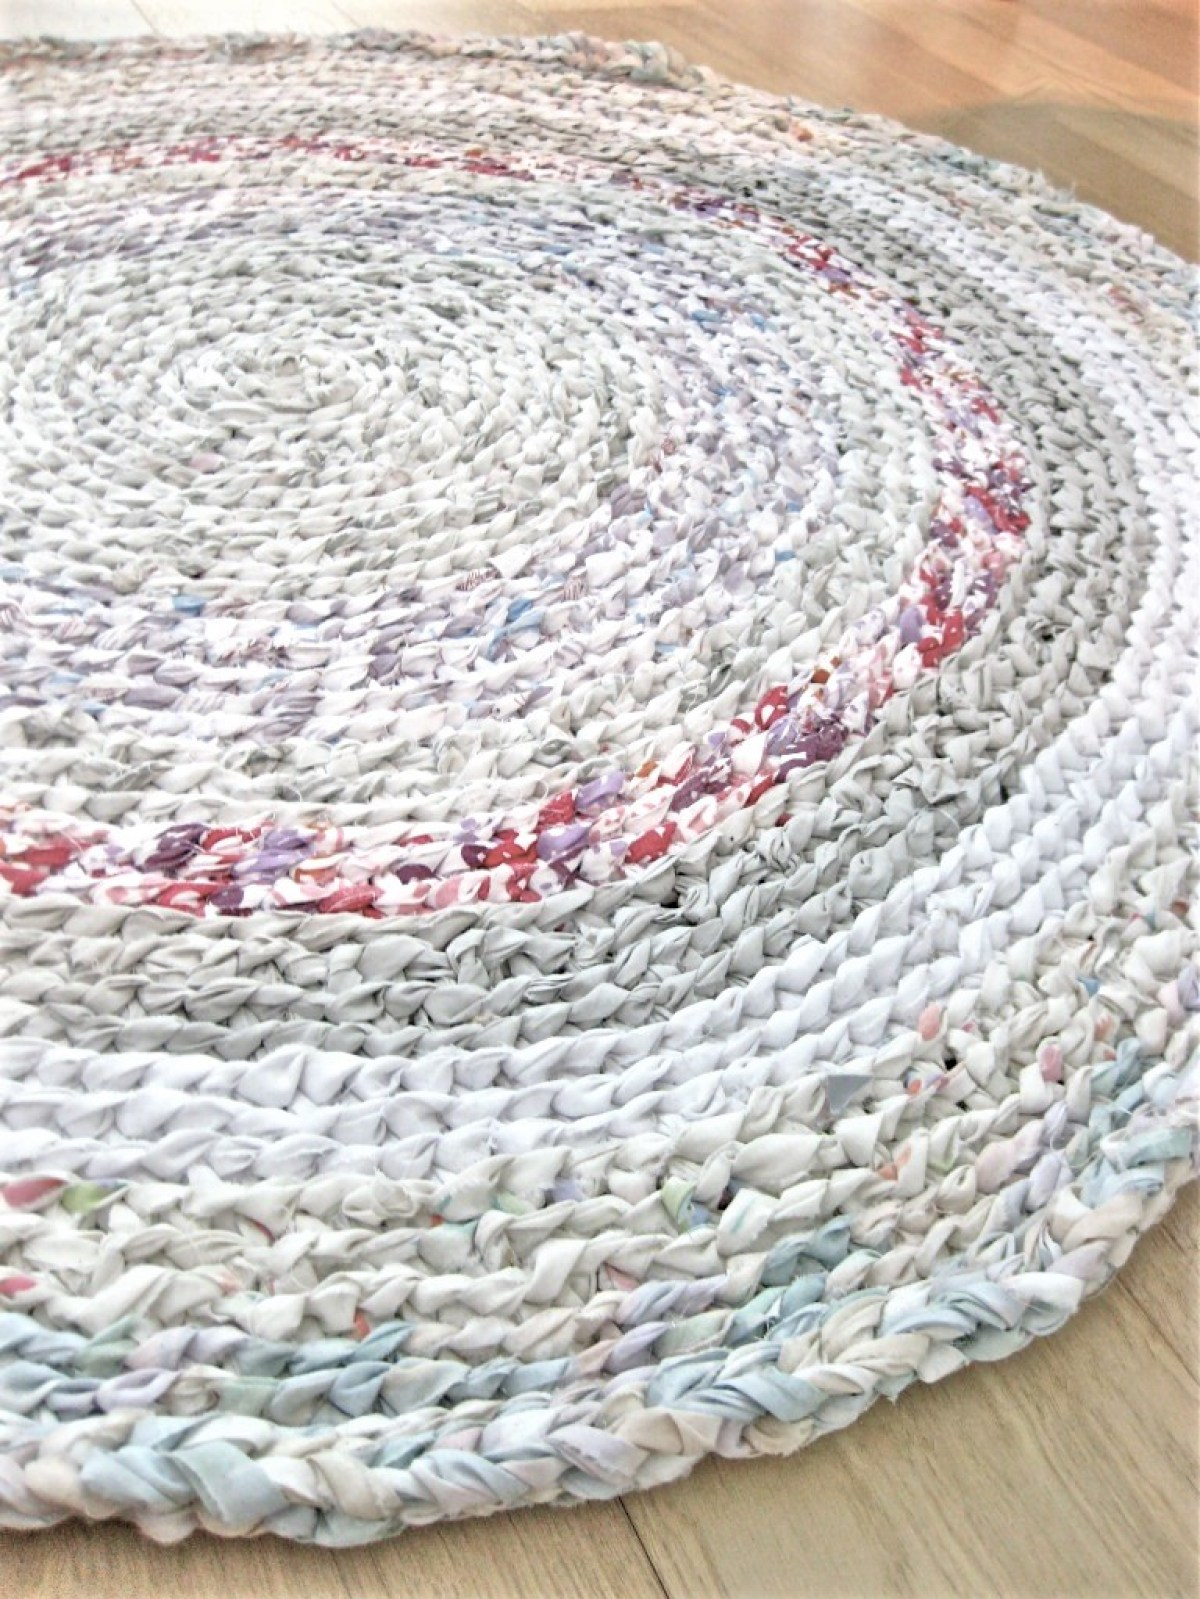 My First Rag Rug! - Made From Old Flat Sheets! - Making ...